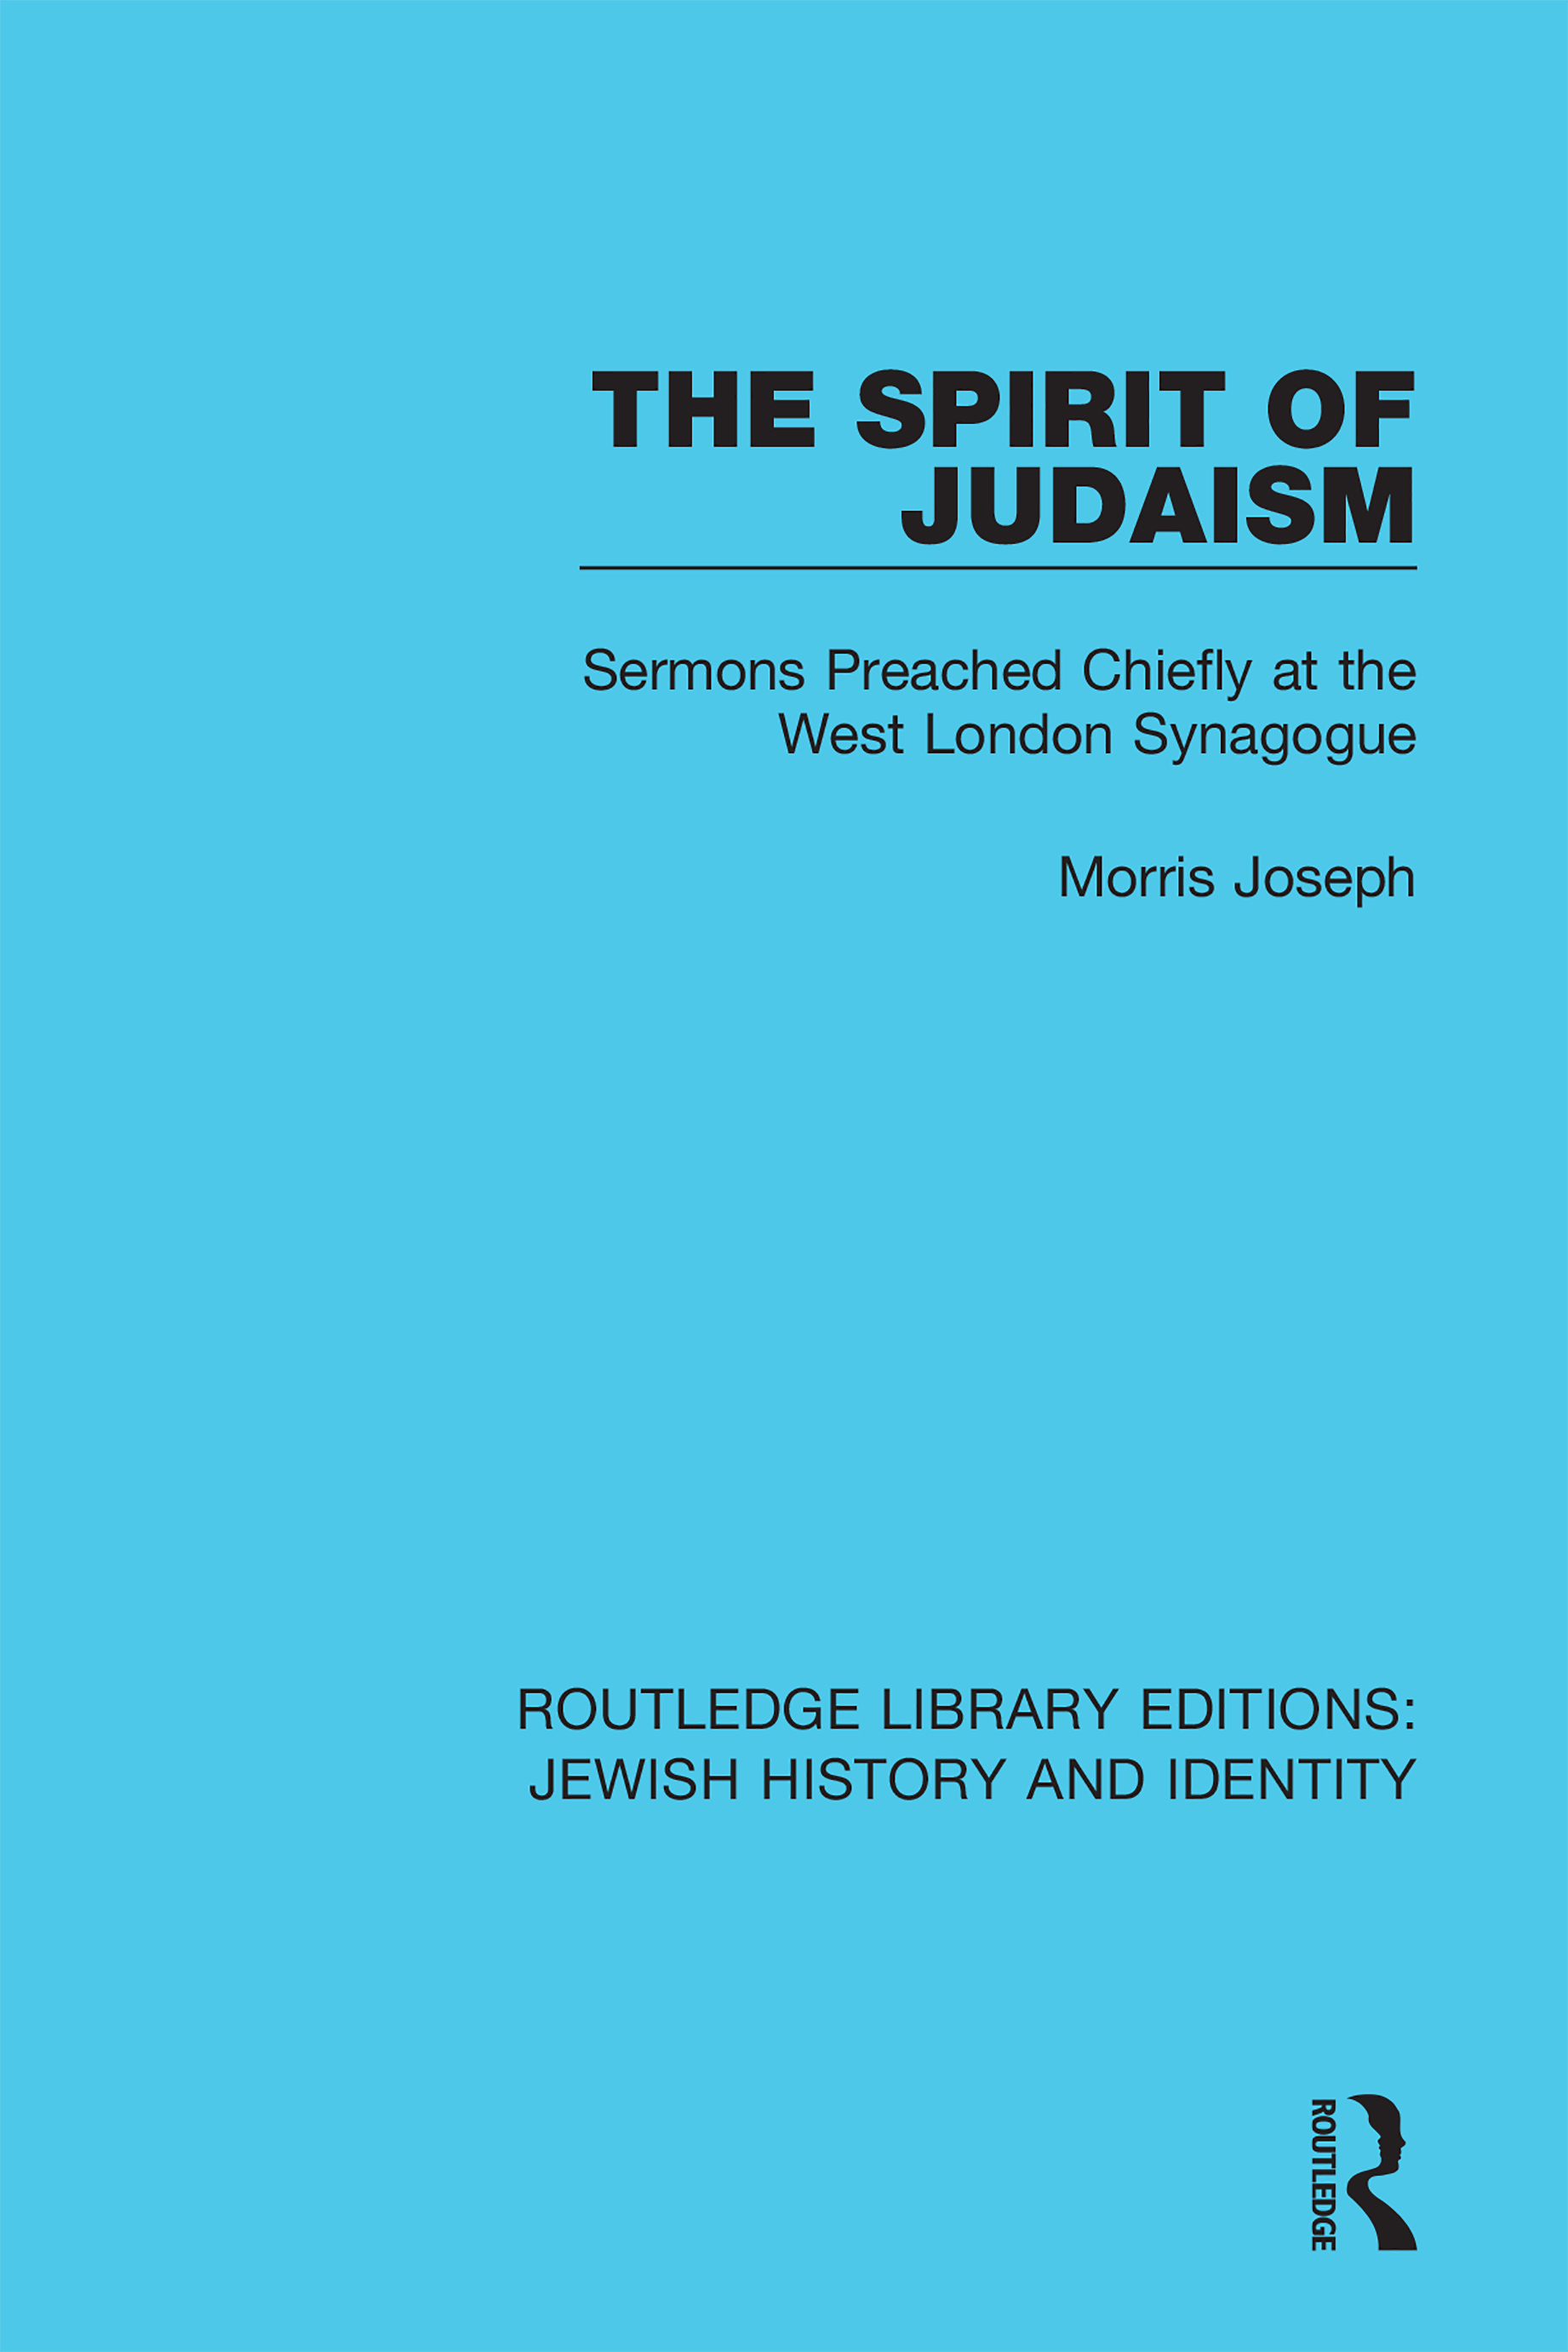 The Spirit of Judaism: Sermons Preached Chiefly at the West London Synagogue, 1st Edition (Hardback) book cover